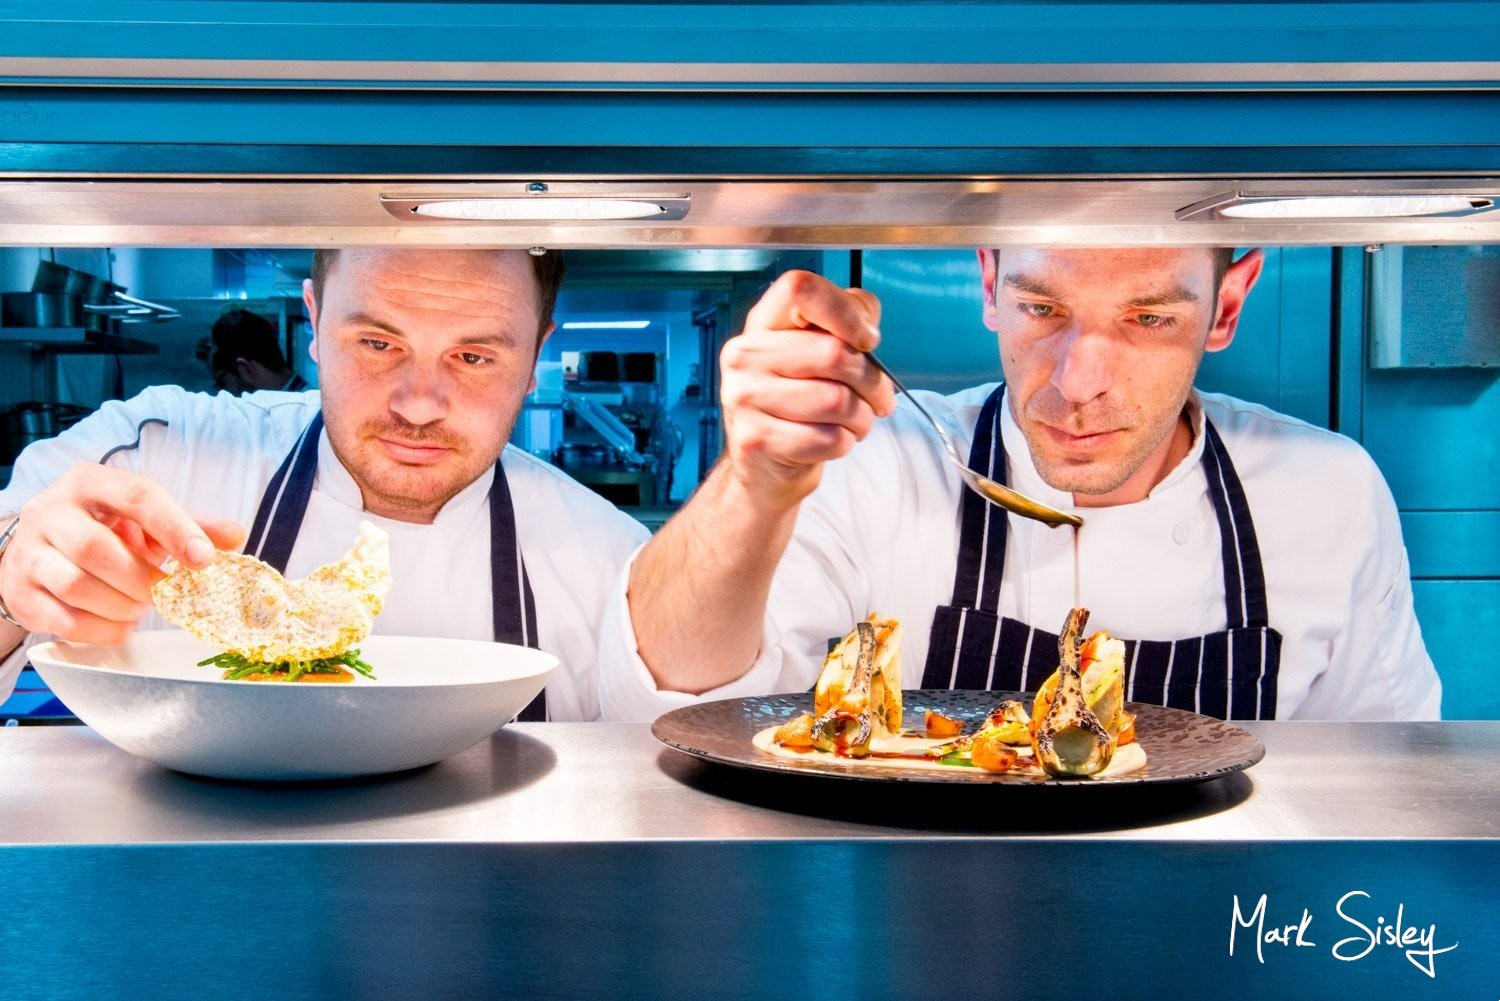 Chefs at work for fine dining food photography - Buckinghamshire